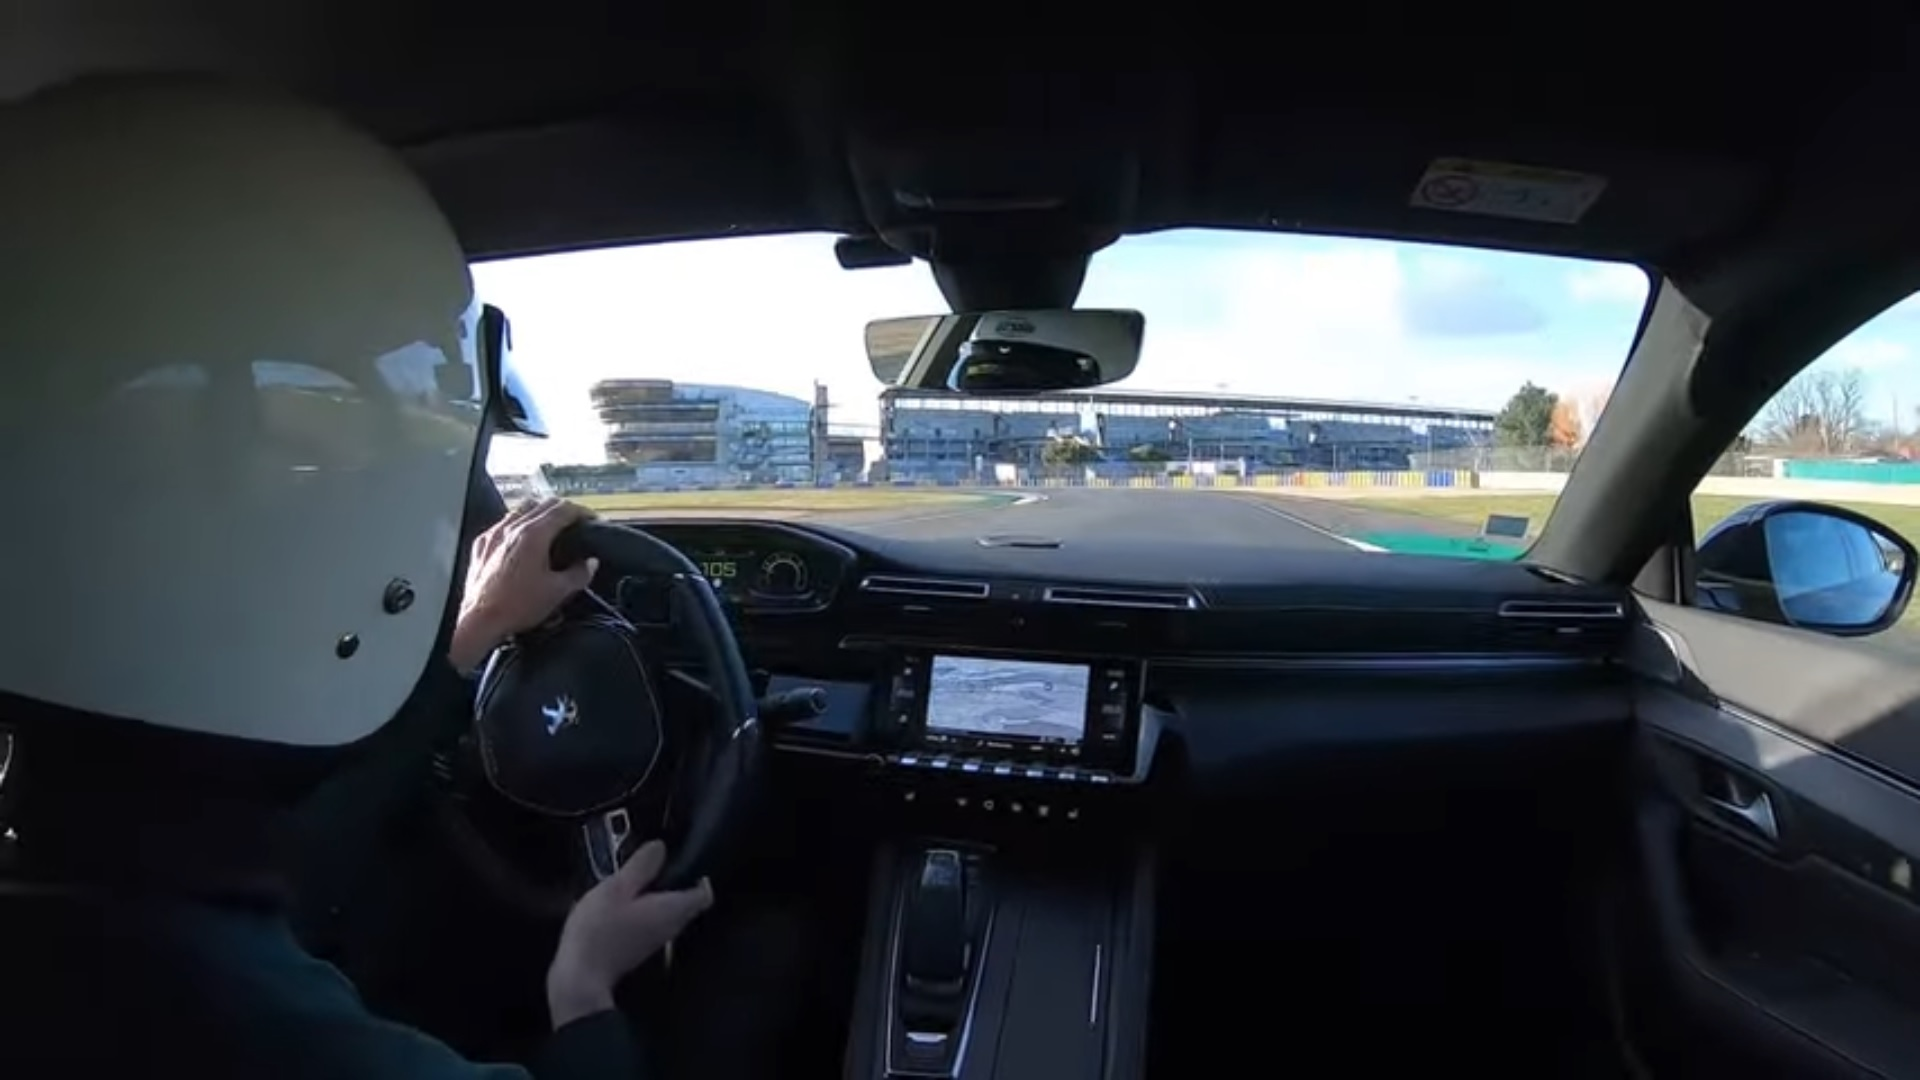 Peugeot 508 PSE on the track